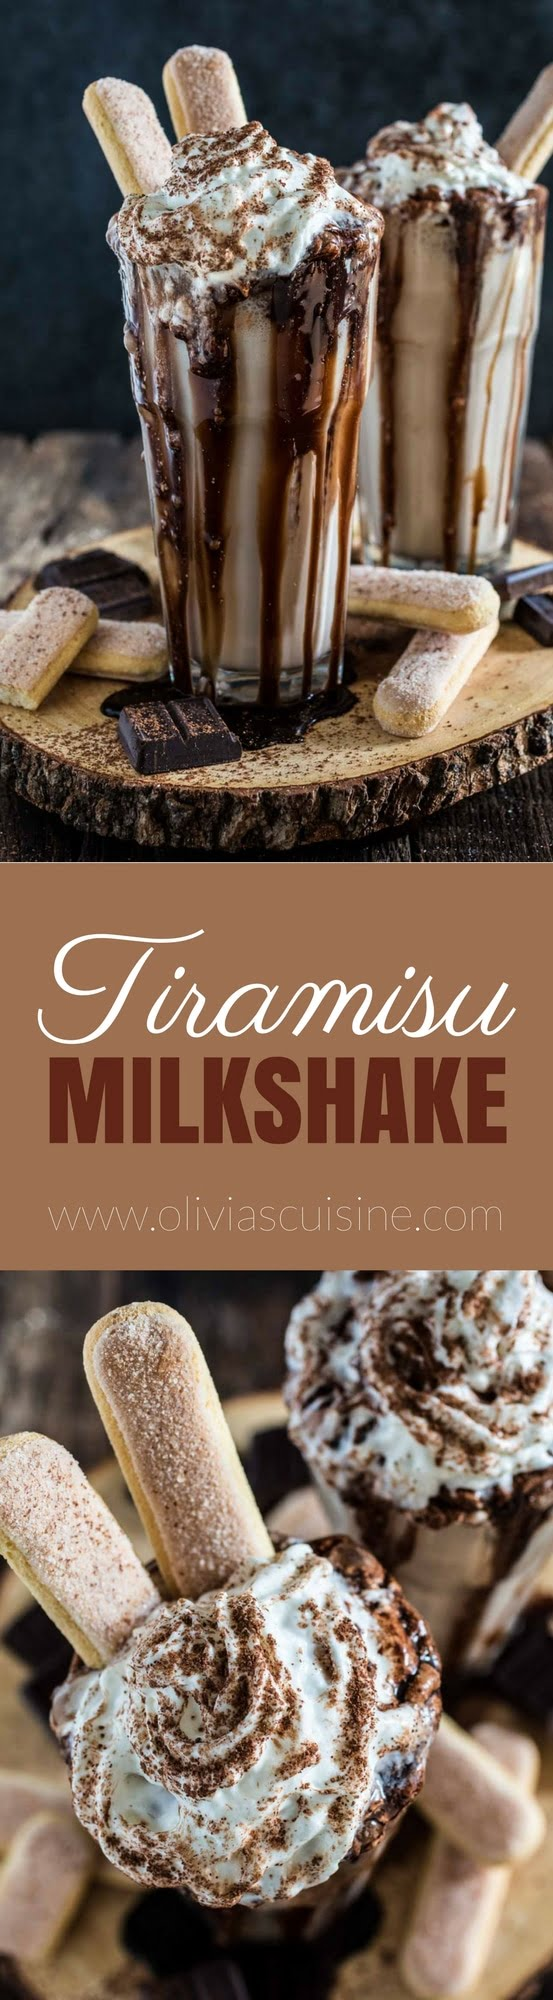 Tiramisu Milkshake | www.oliviascuisine.com | This EPIC milkshake, inspired by the classic Italian tiramisu, is rich, creamy and oh so delicious. It will definitely blow your mind!